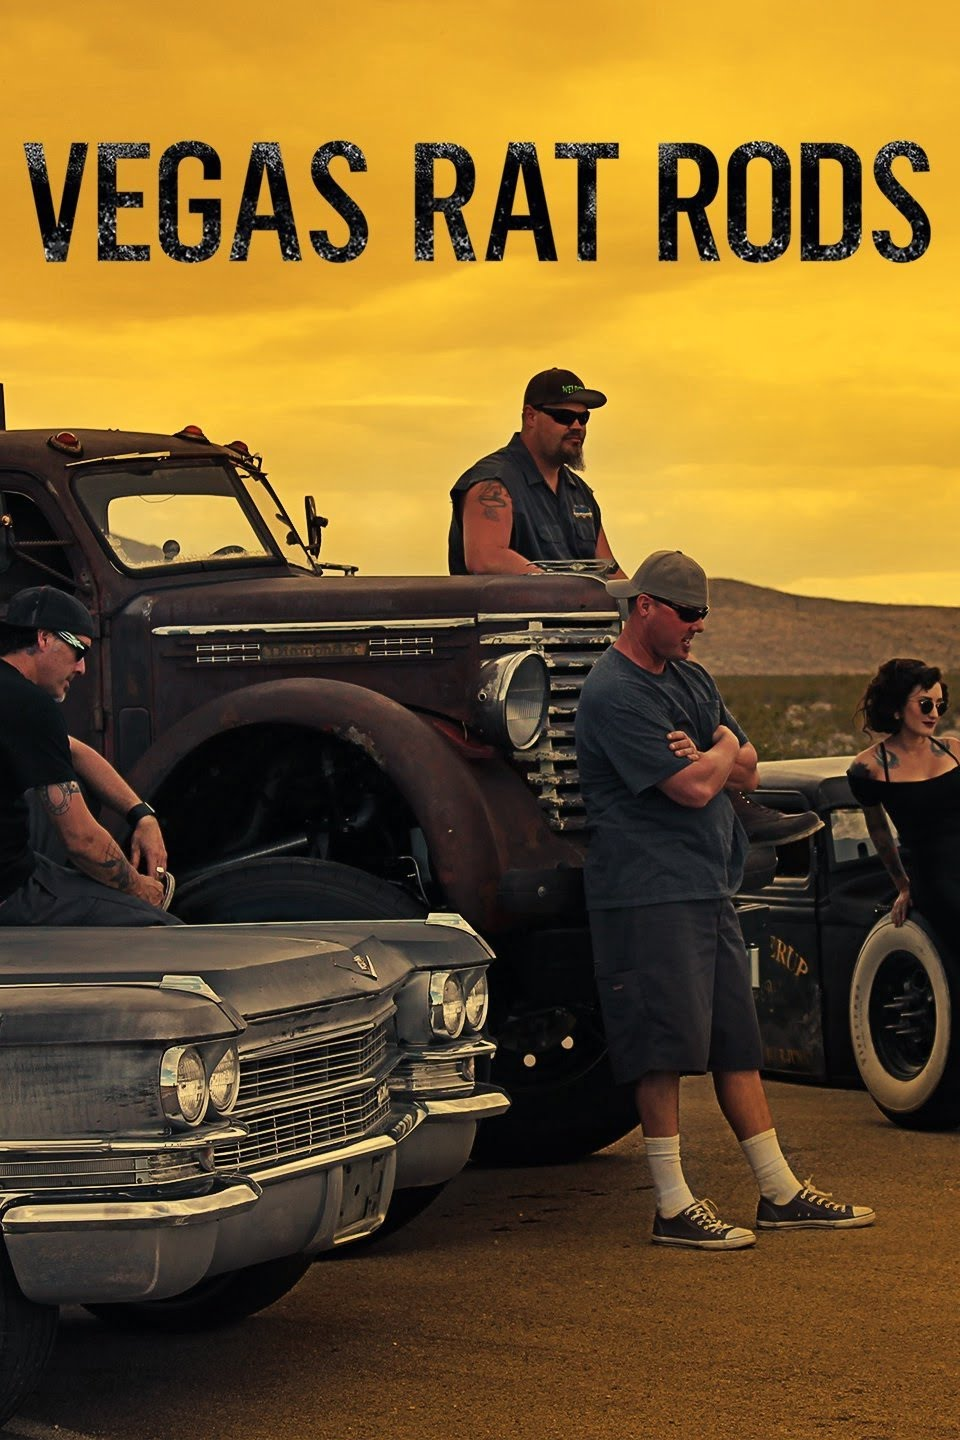 vegas-rat-rods-filming-locations-poster